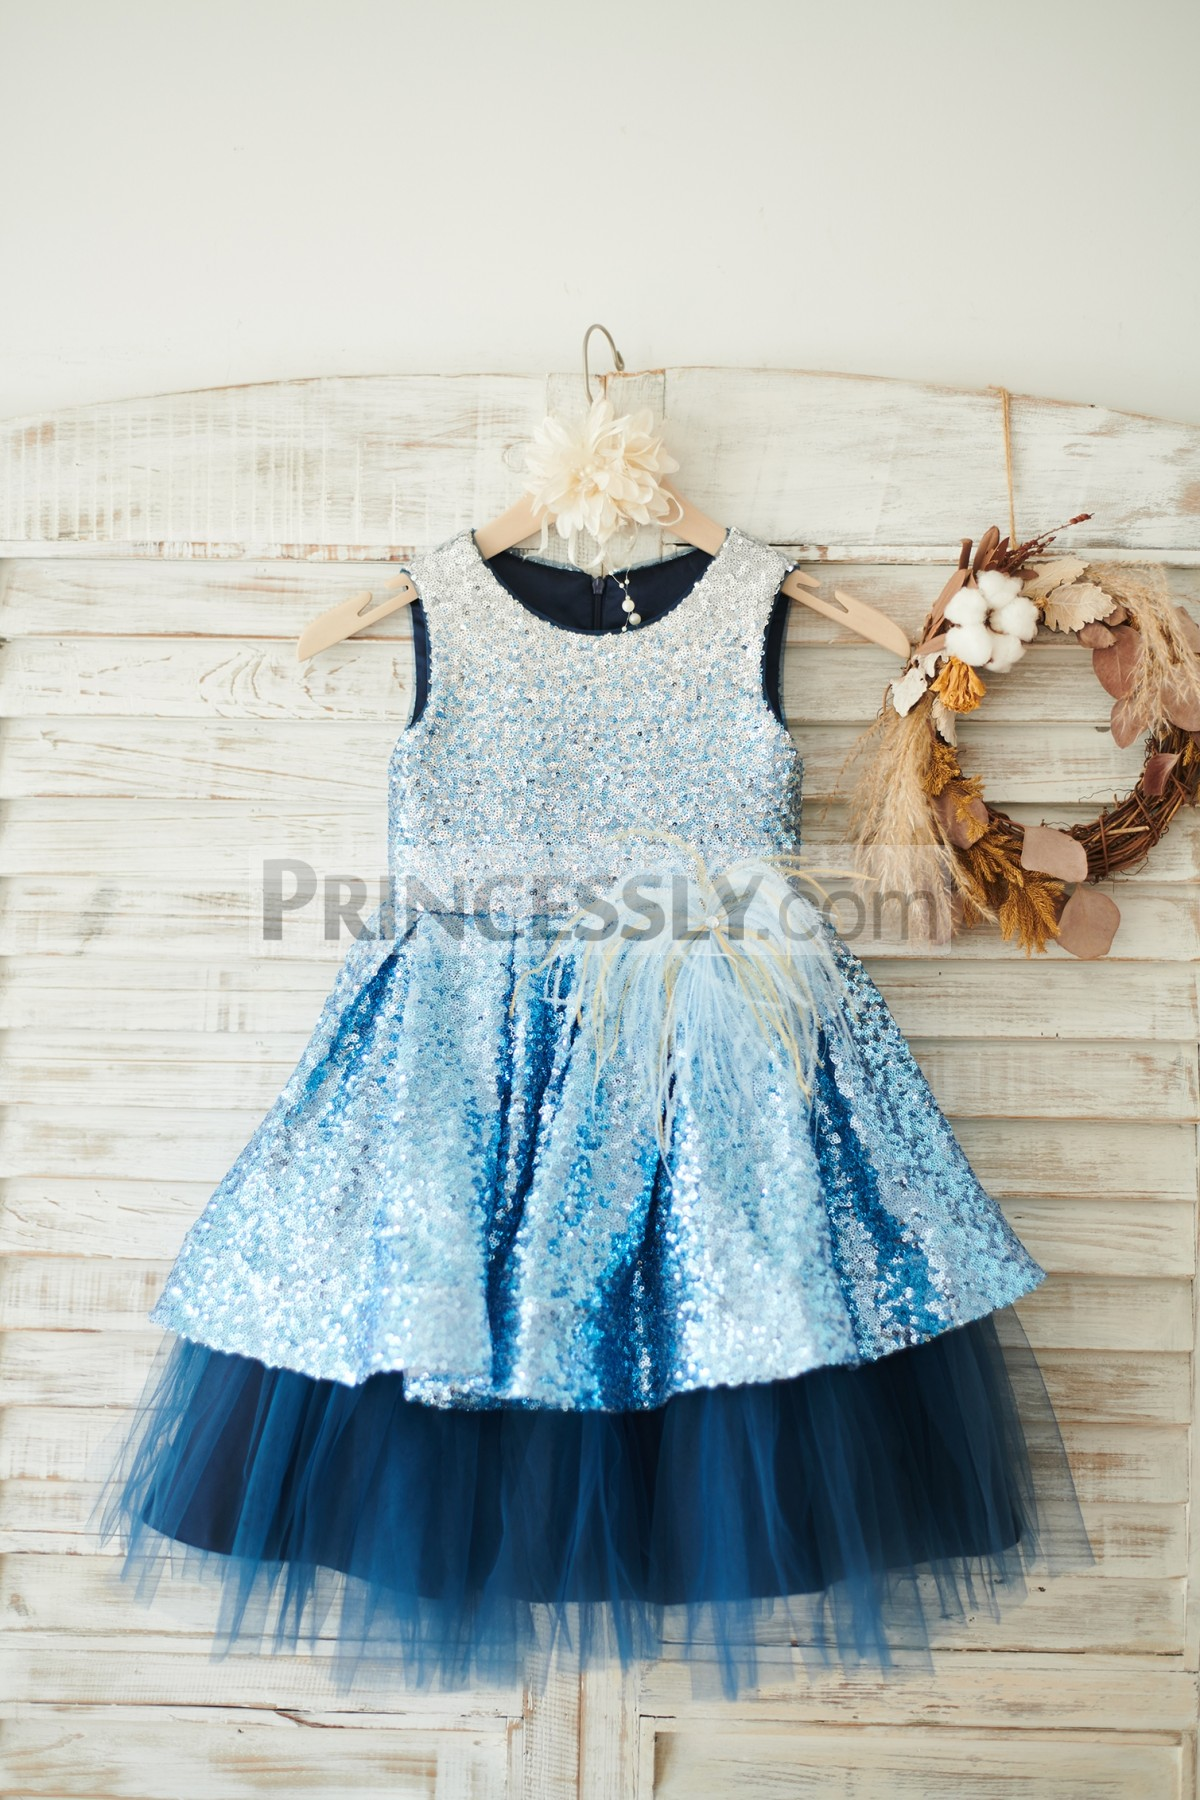 f4e8b50df Child Colorful Sequins Navy Blue Satin Tulle Wedding Toddler Girl Dress